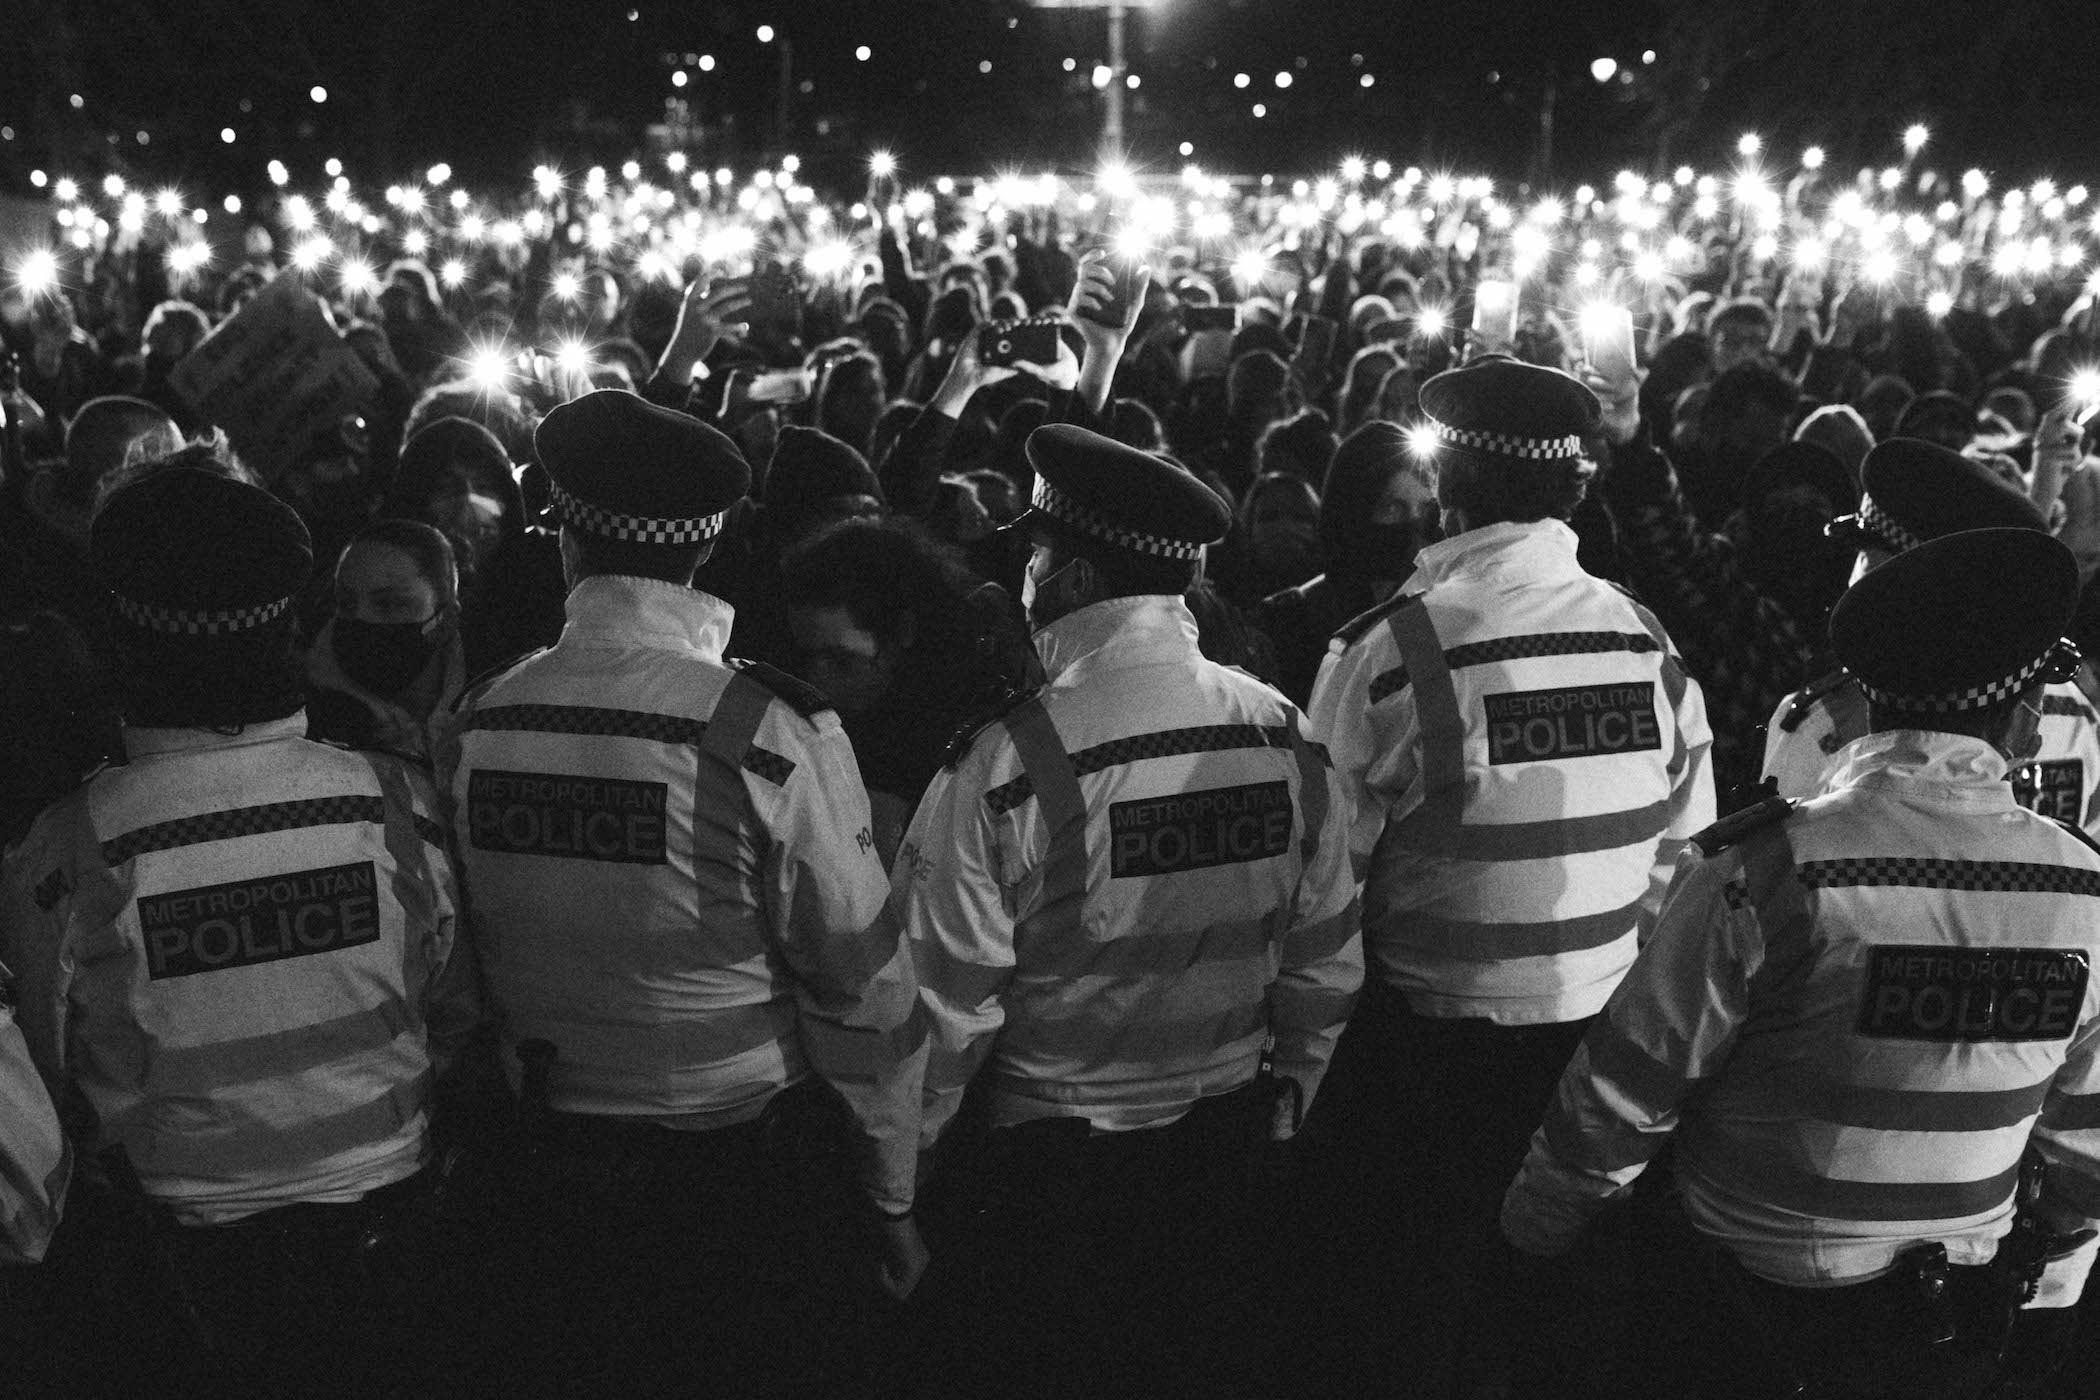 Police storming the vigil for Sarah Everard, in photos